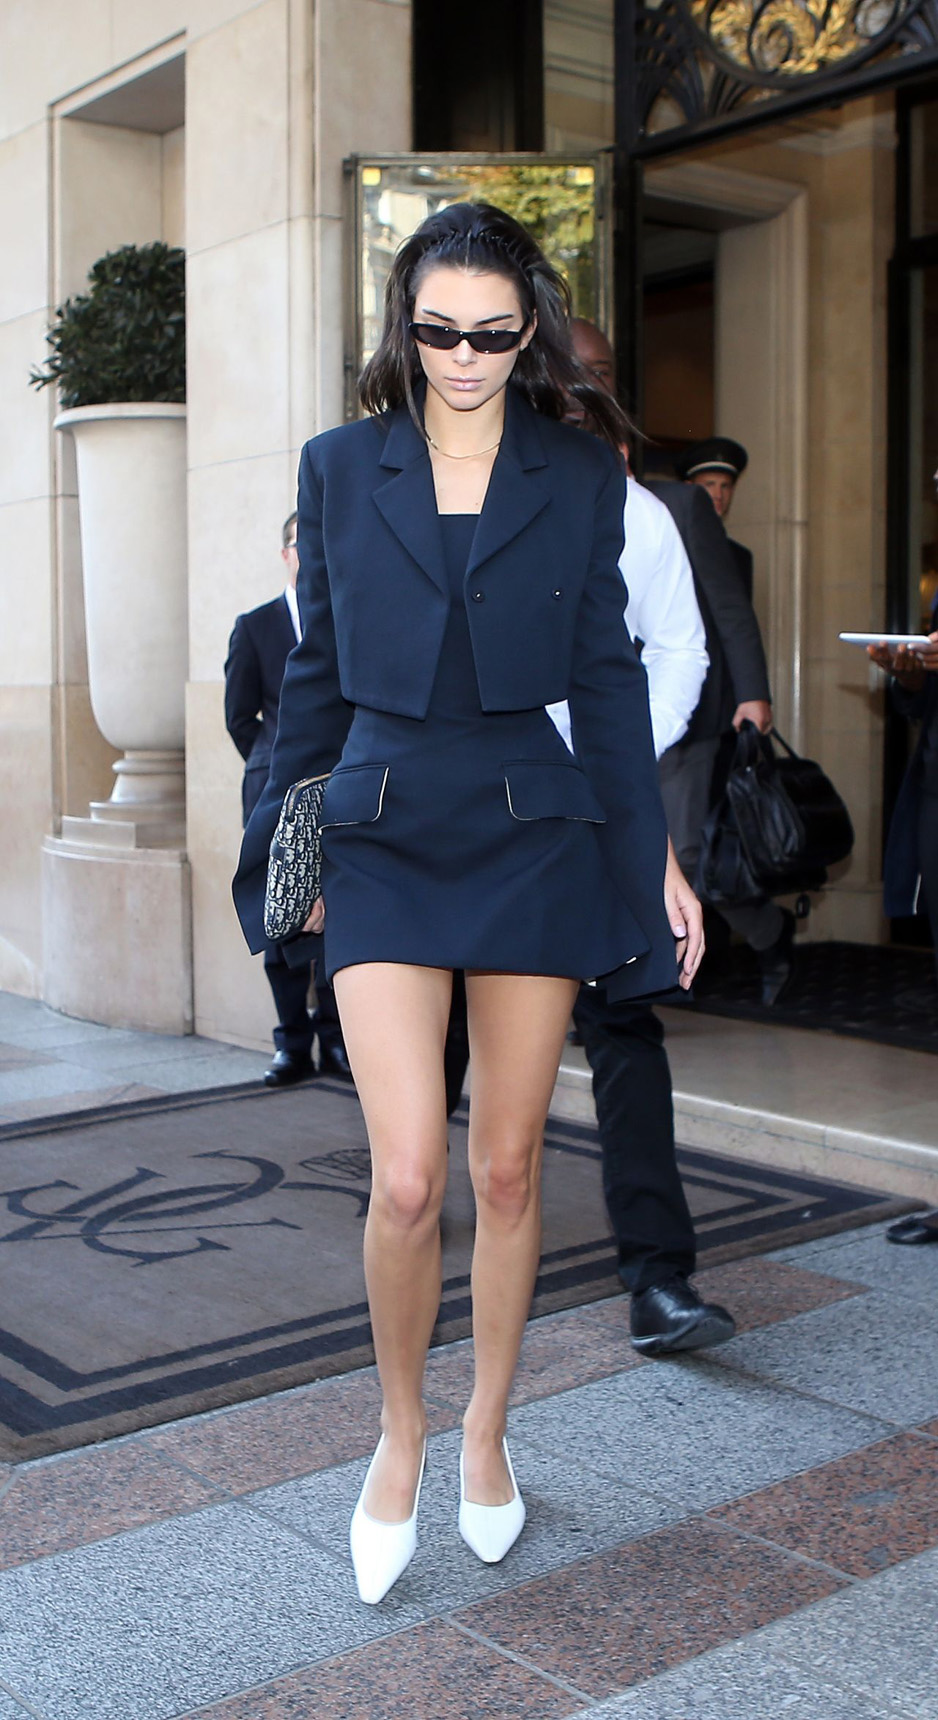 PARIS STREET STYLE - Kendall Jenner in Marina Moscone, Ellery, and Andy Wolf